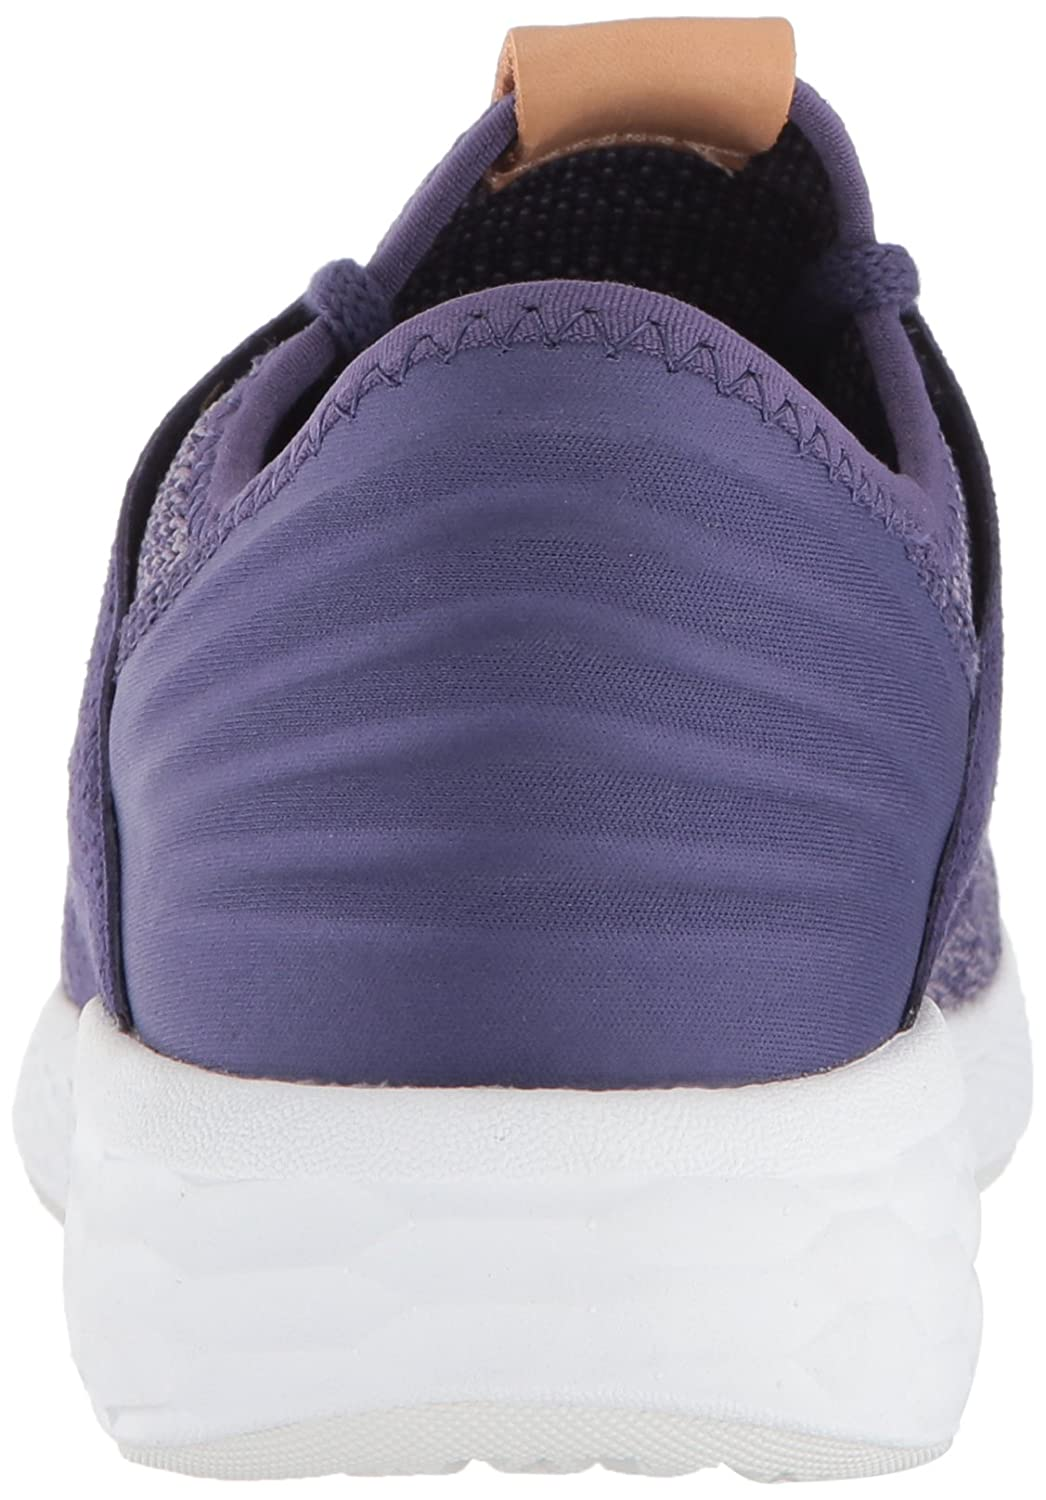 New Balance Women's Cruz V2 Fresh Foam Running Shoe B075R6Z1CM 9 D US|Wild Indigo 402